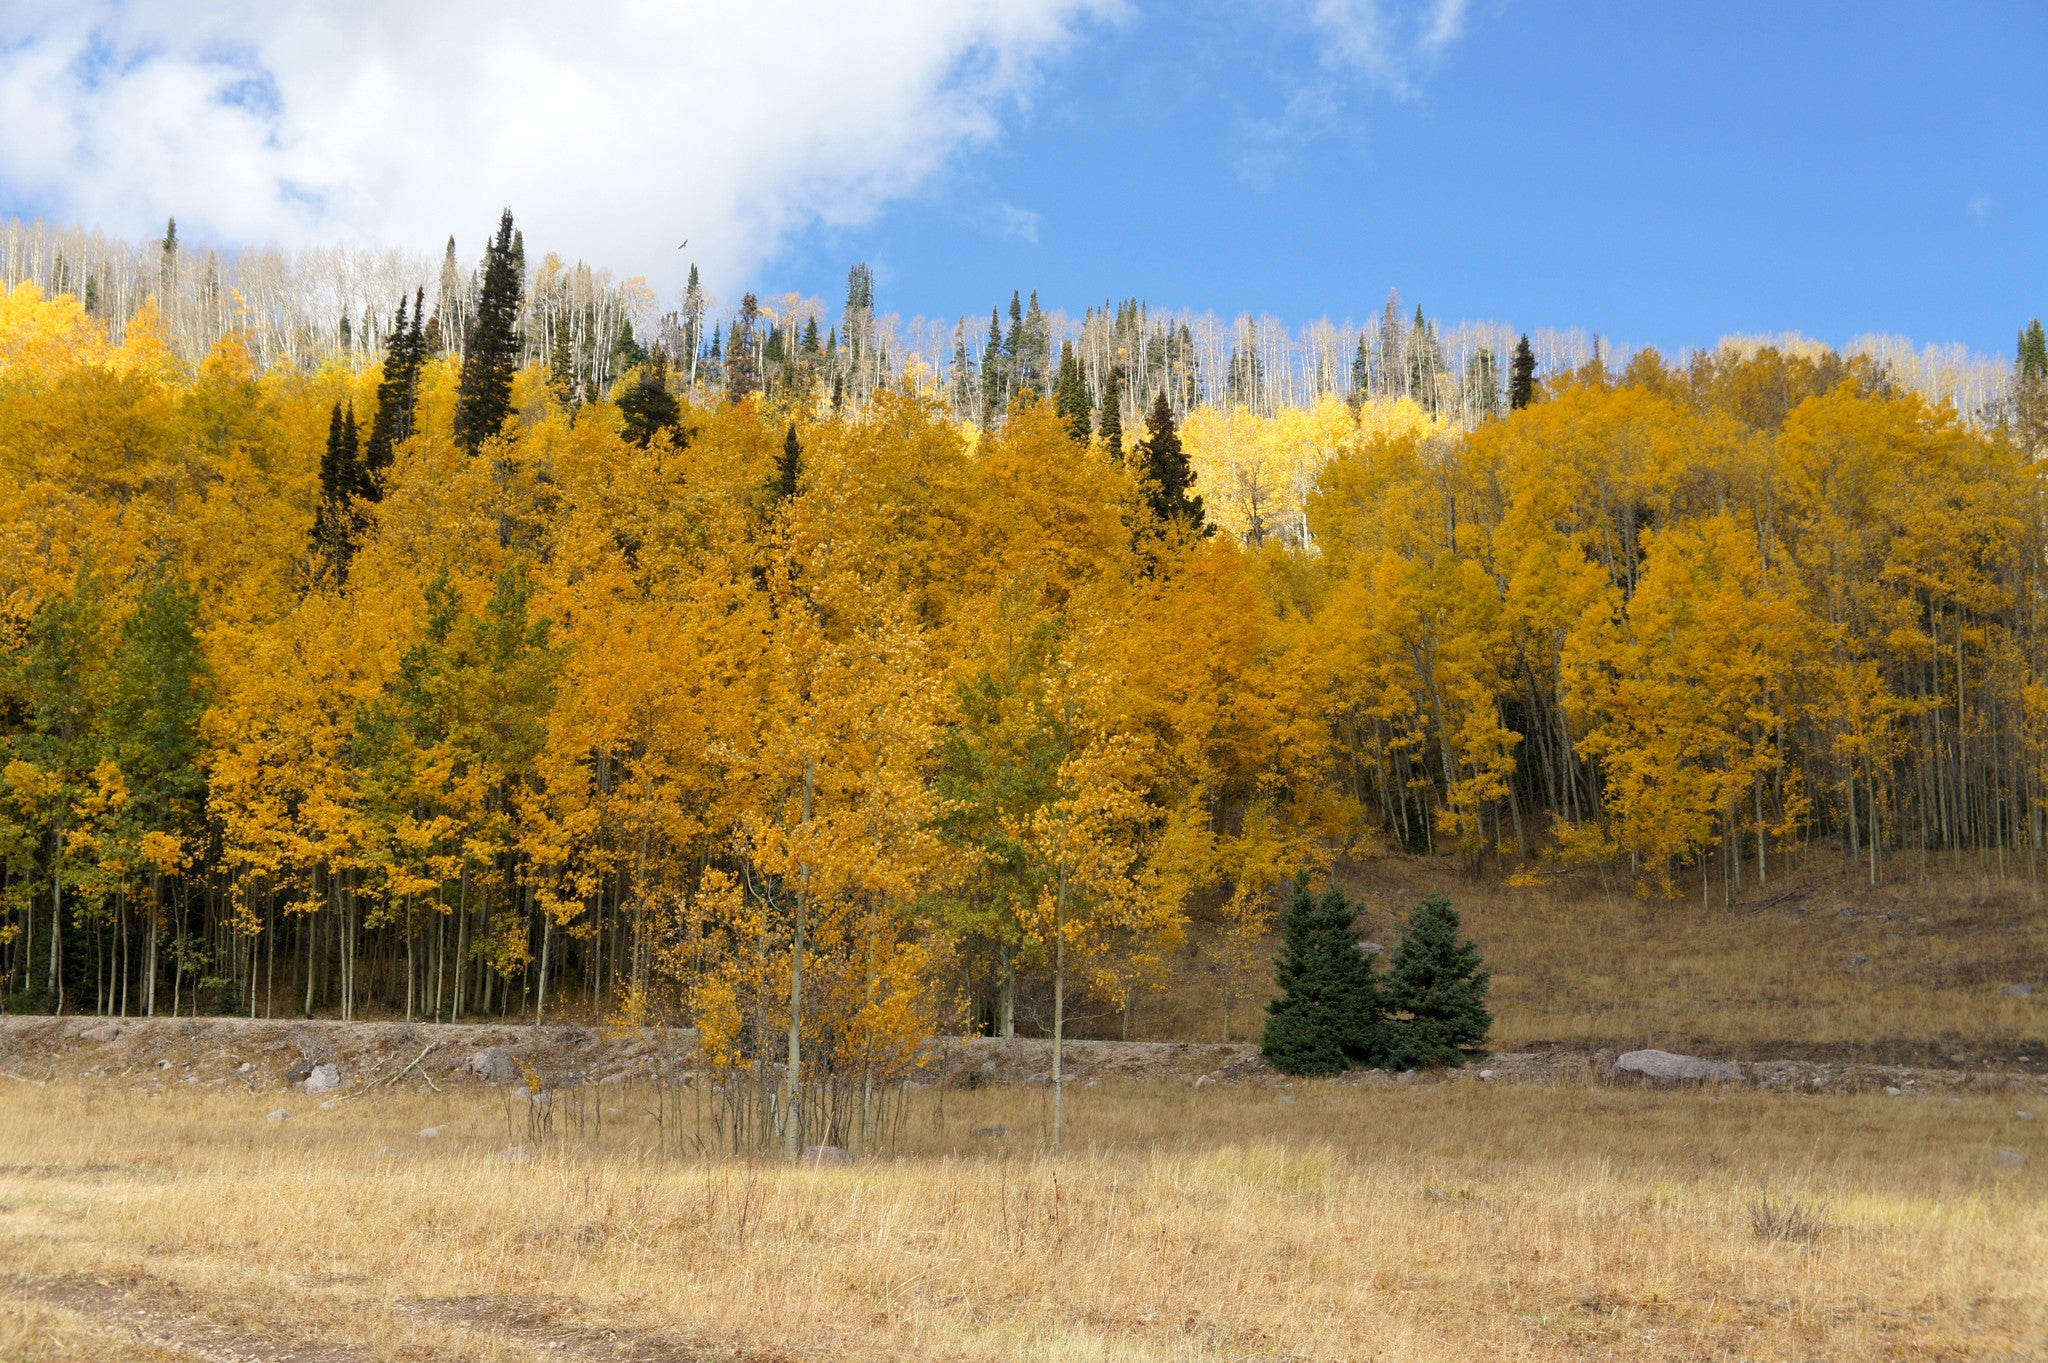 10 Amazing Utah Fall Foliage Photos